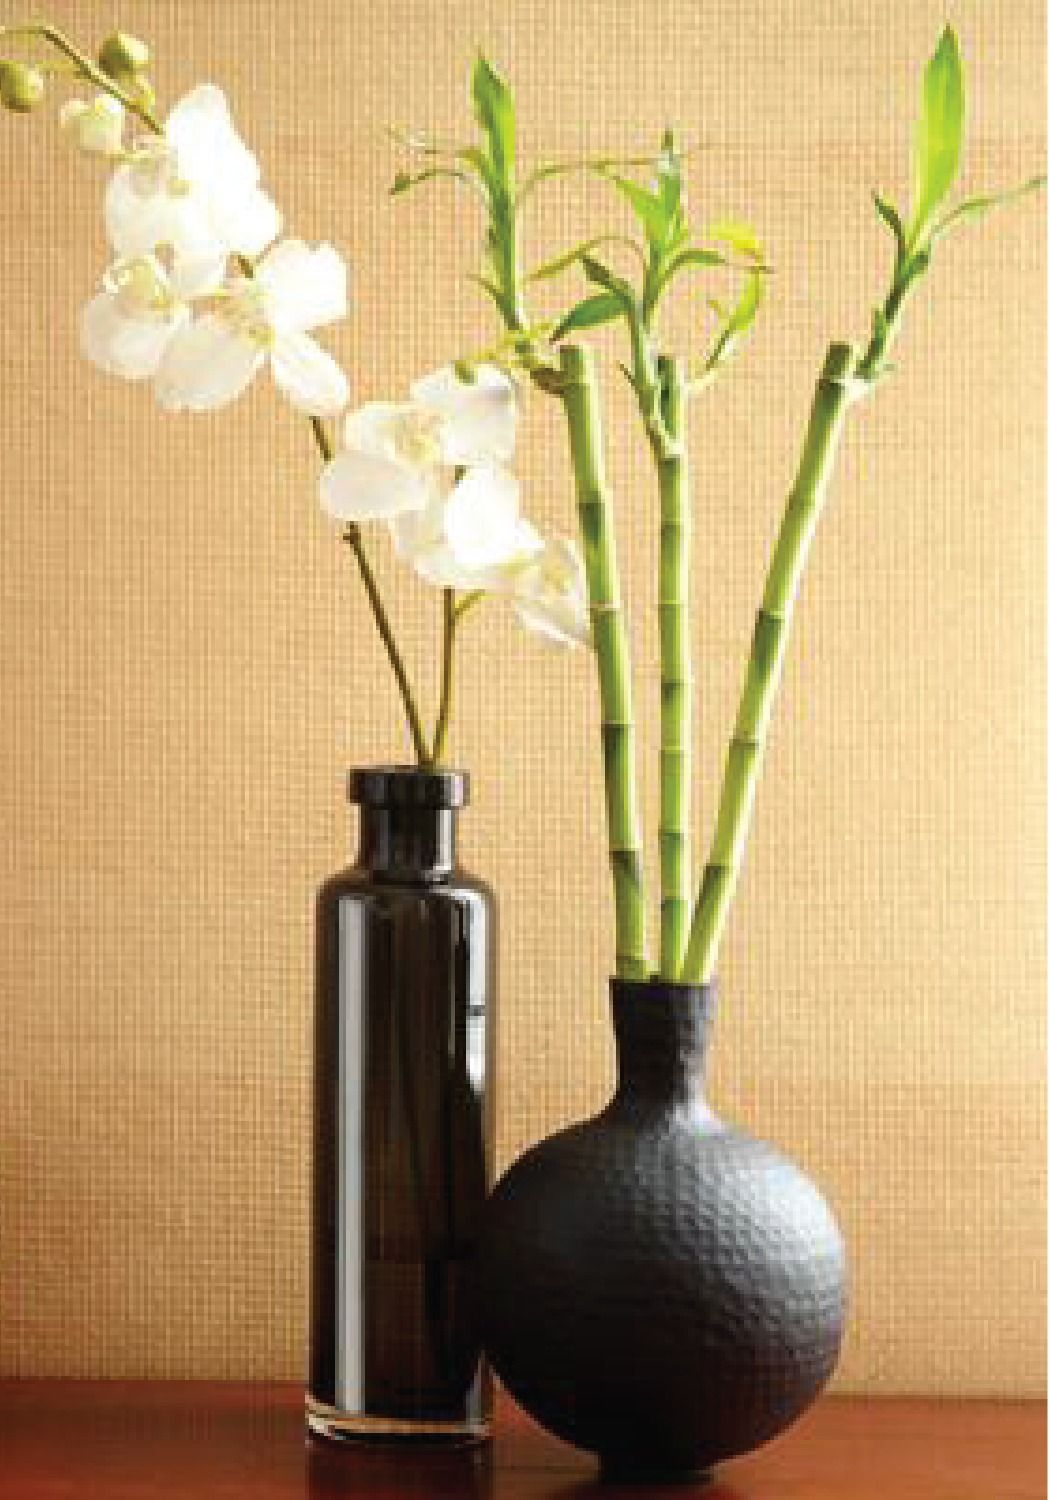 Zen Arte E Aroma Read These Tips To Get The Right Tools And Materials For Home